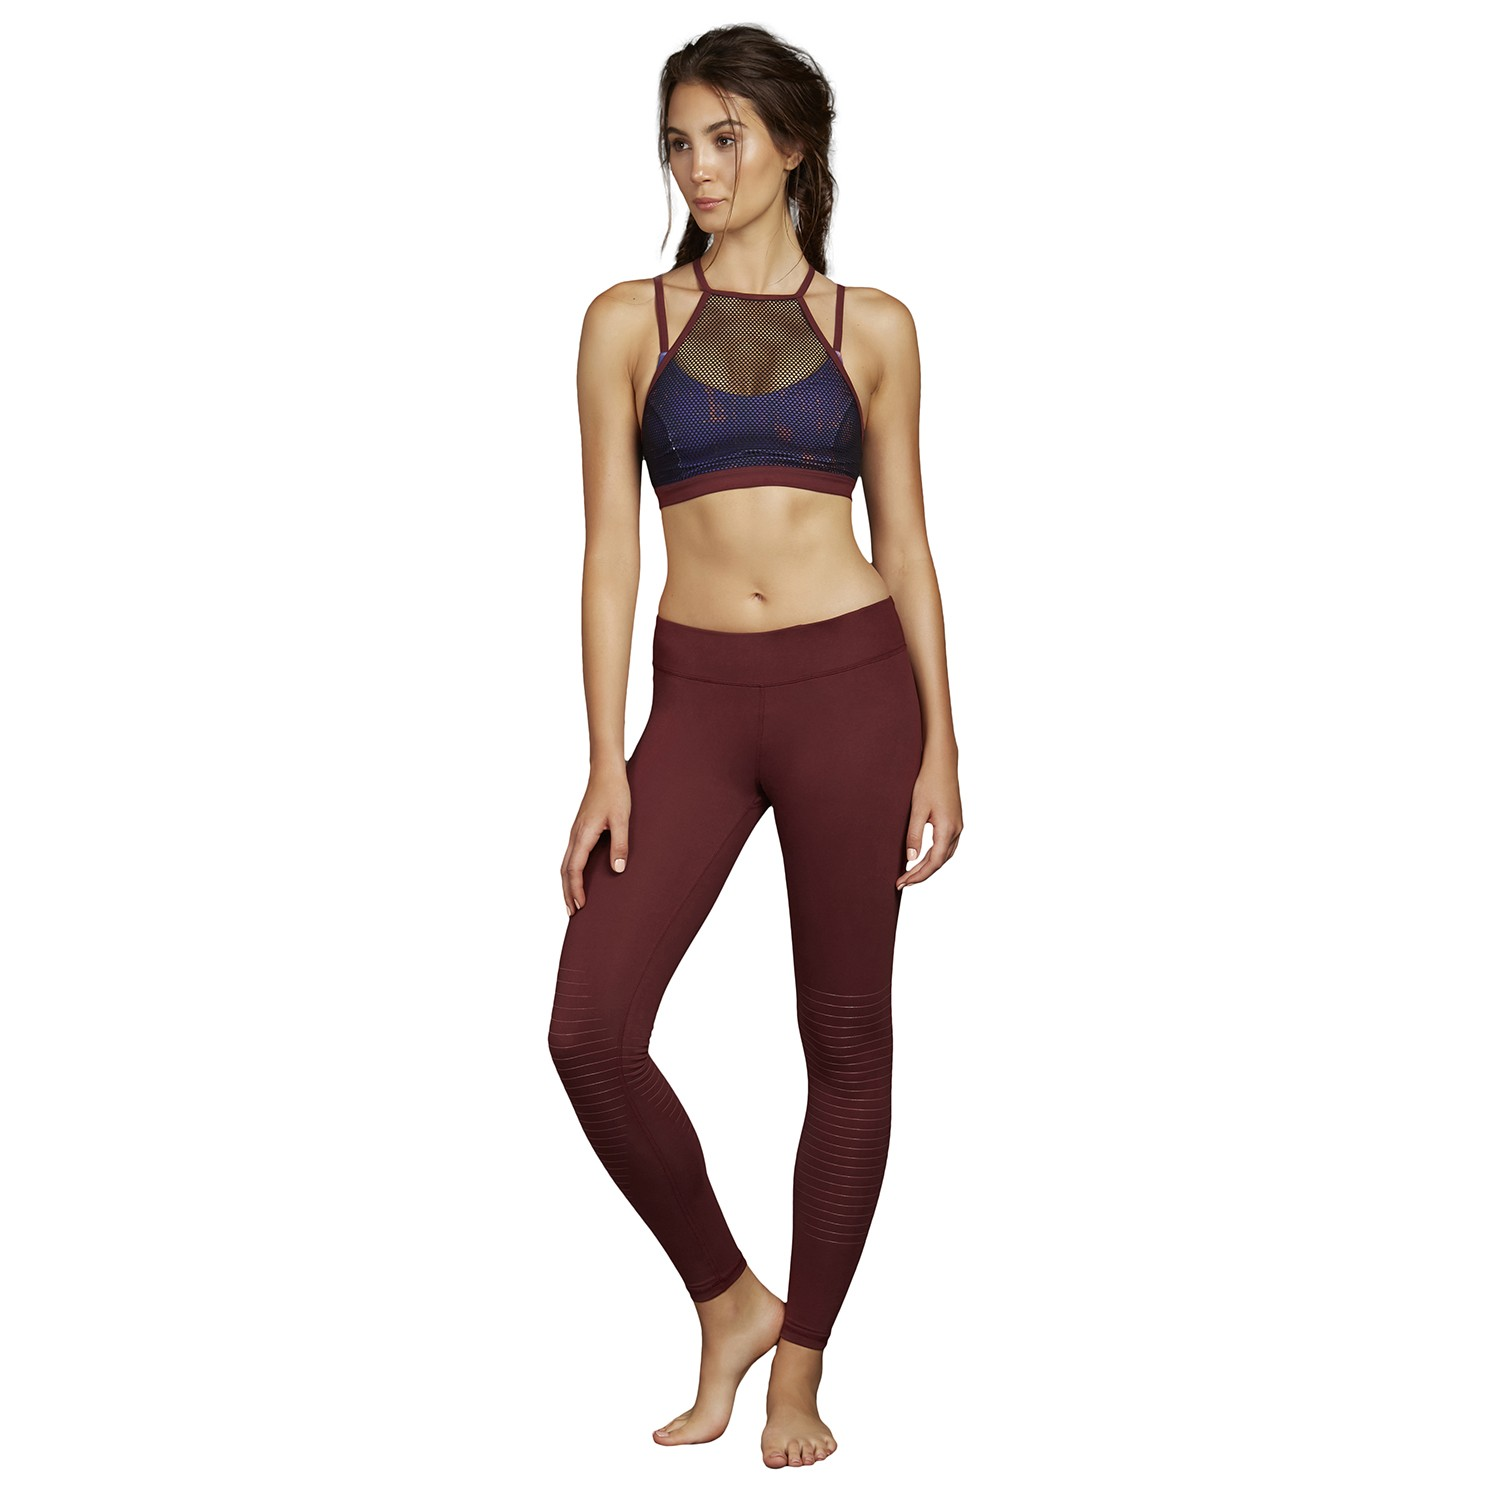 41c1a95c4274ec Mayna Yong | Quality Yoga Apparel and Accessories